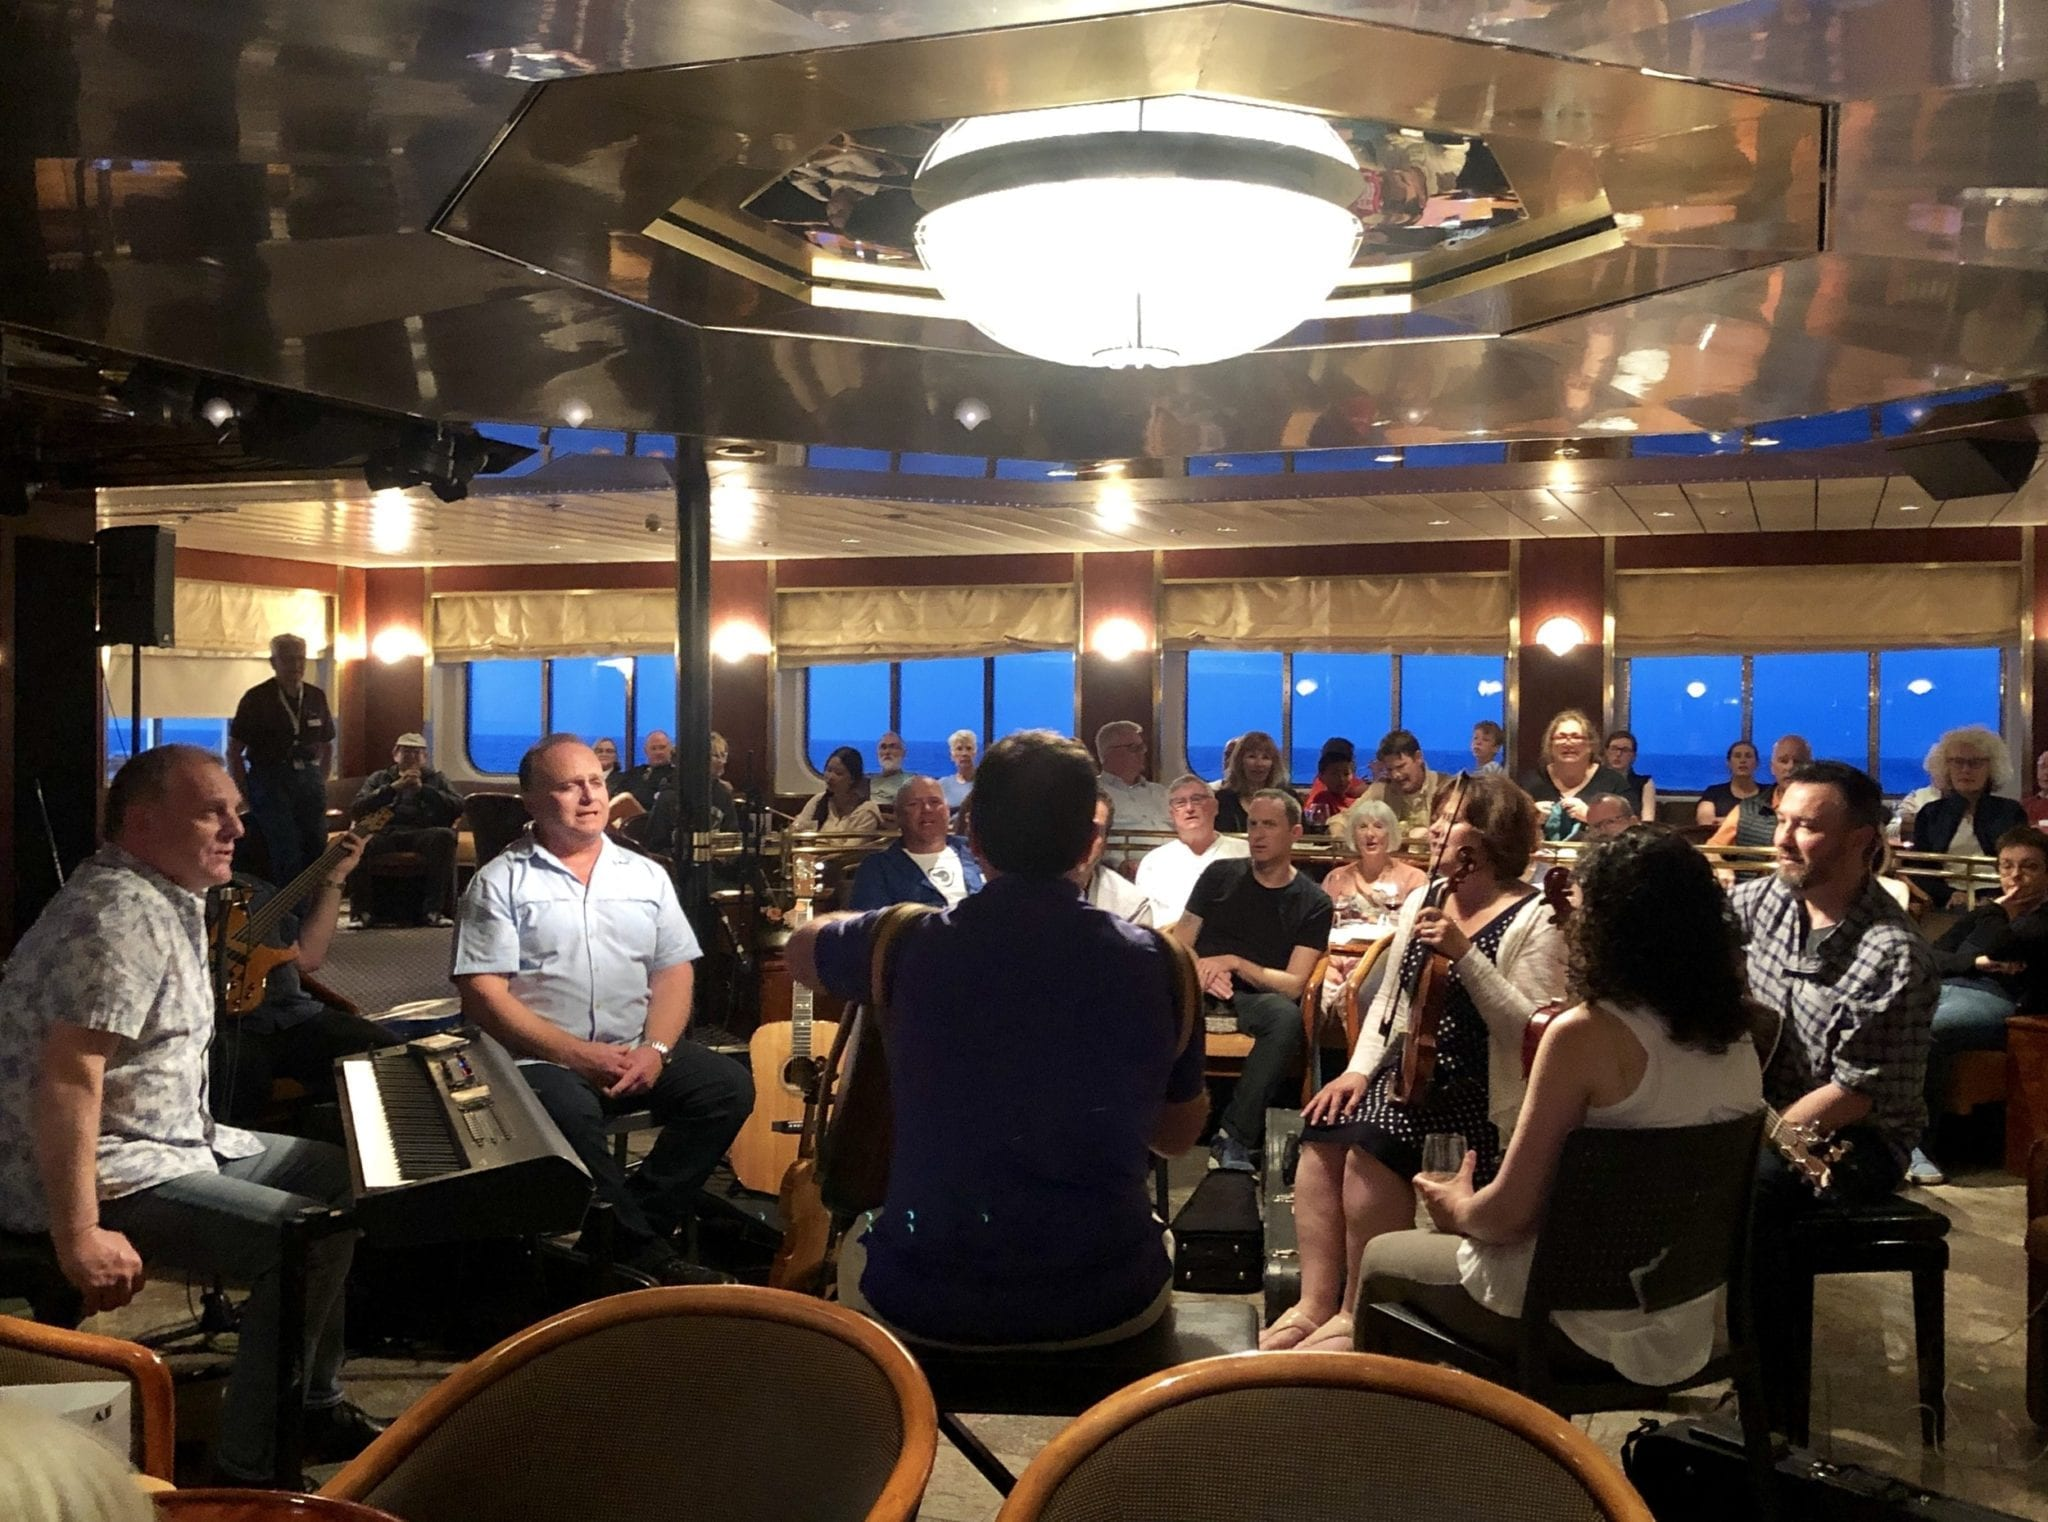 The Barra MacNeills band plays with the members sitting in a circle with violins, keyboard, and drums, surrounded by passengers on the cruise ship.